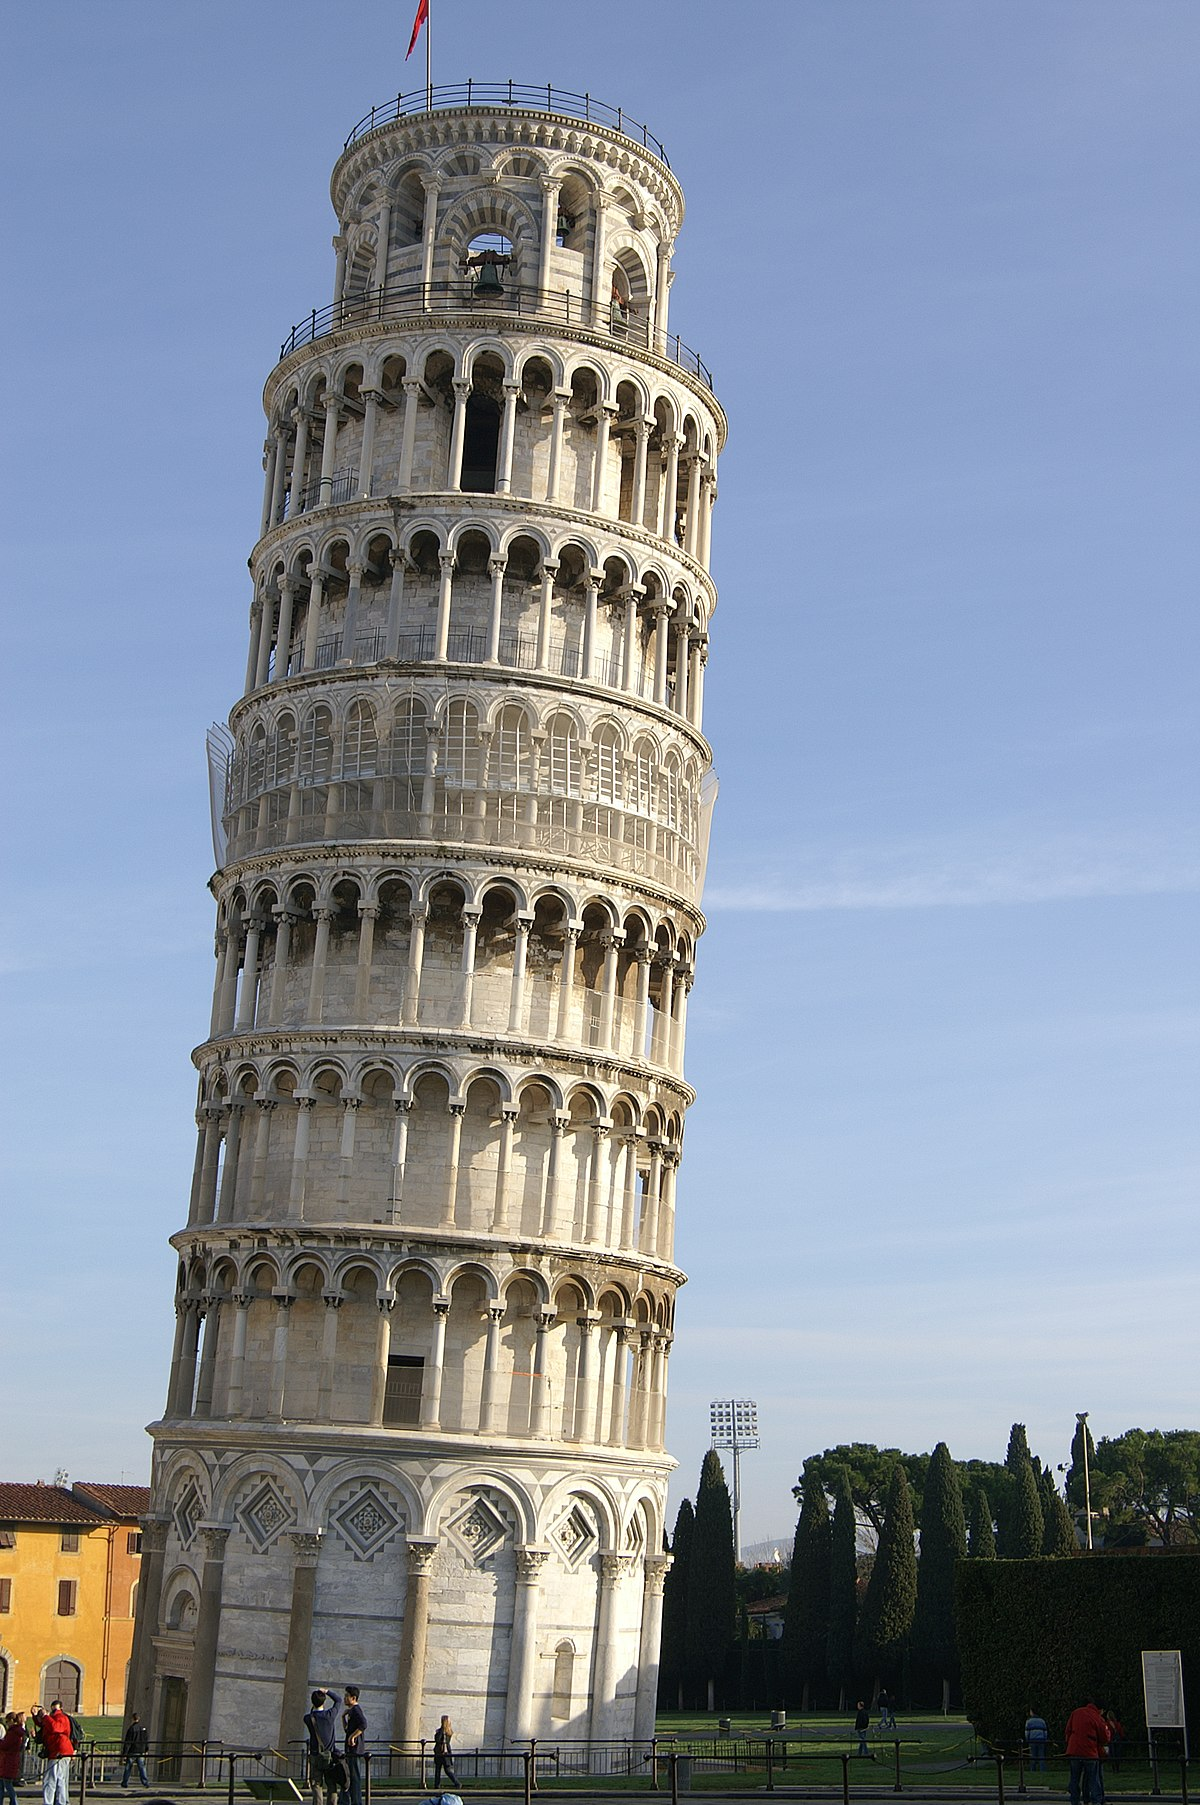 1200px-Leaning_Tower_of_Pisa_(1).jpg